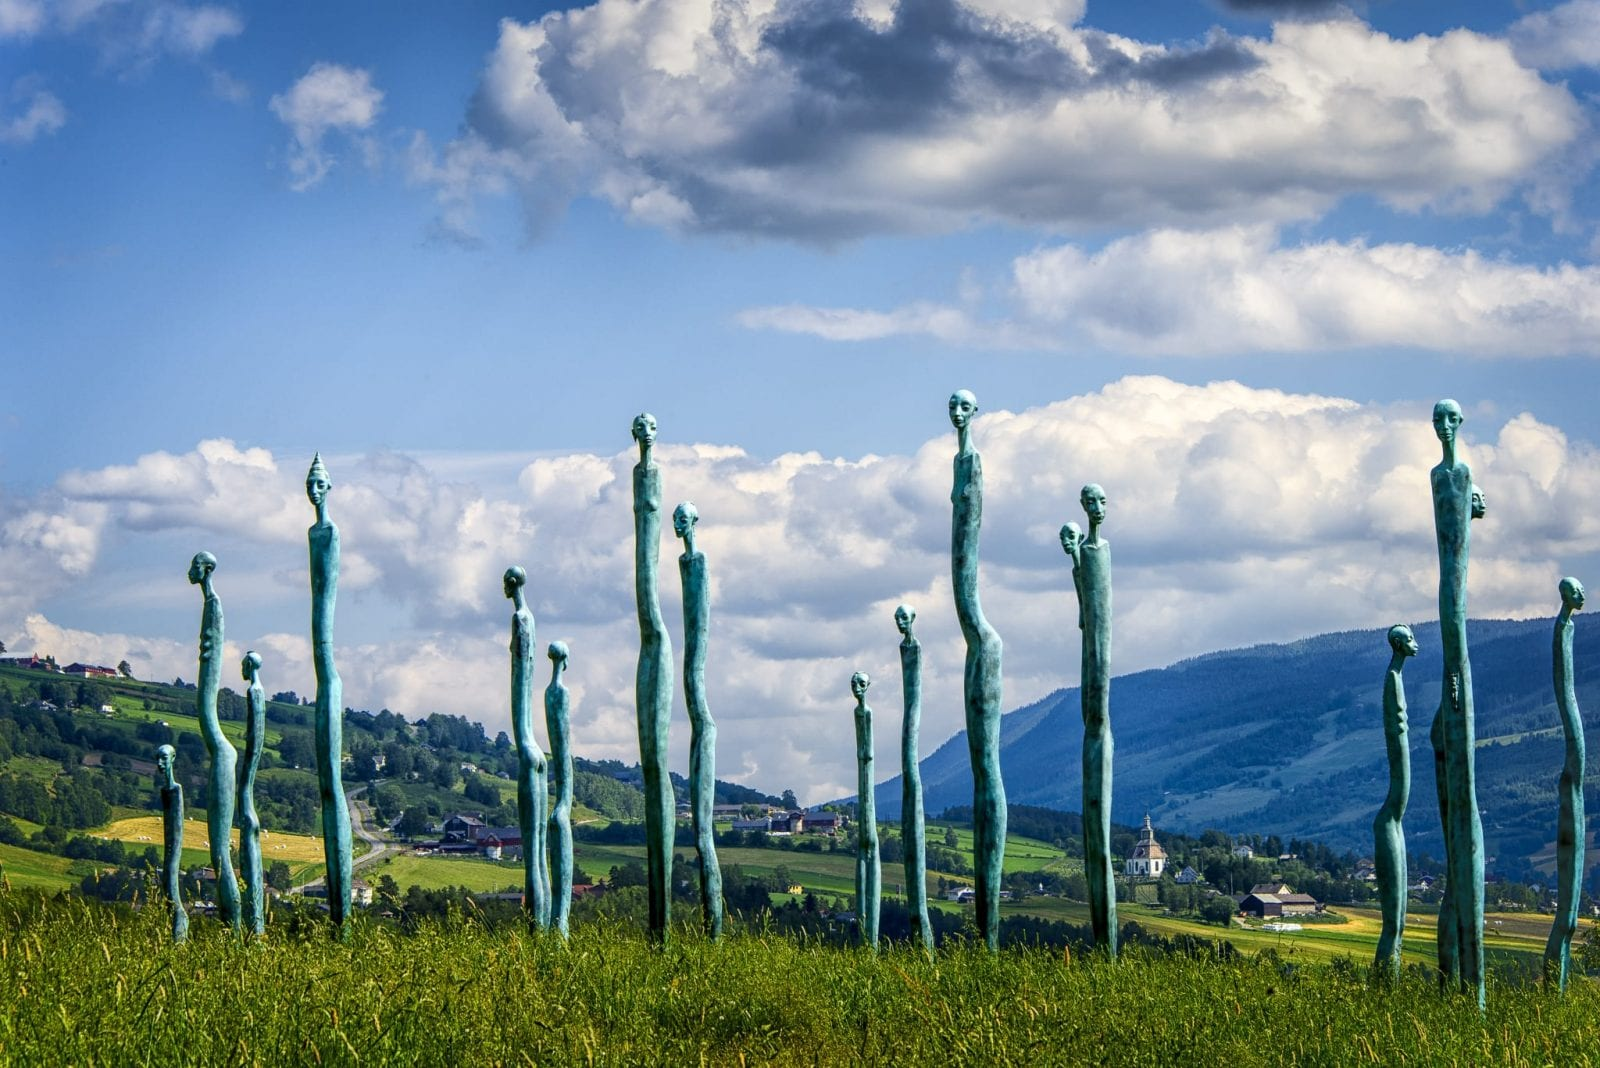 This is a scenic shot of the Lillehammer Flokk sculptures.